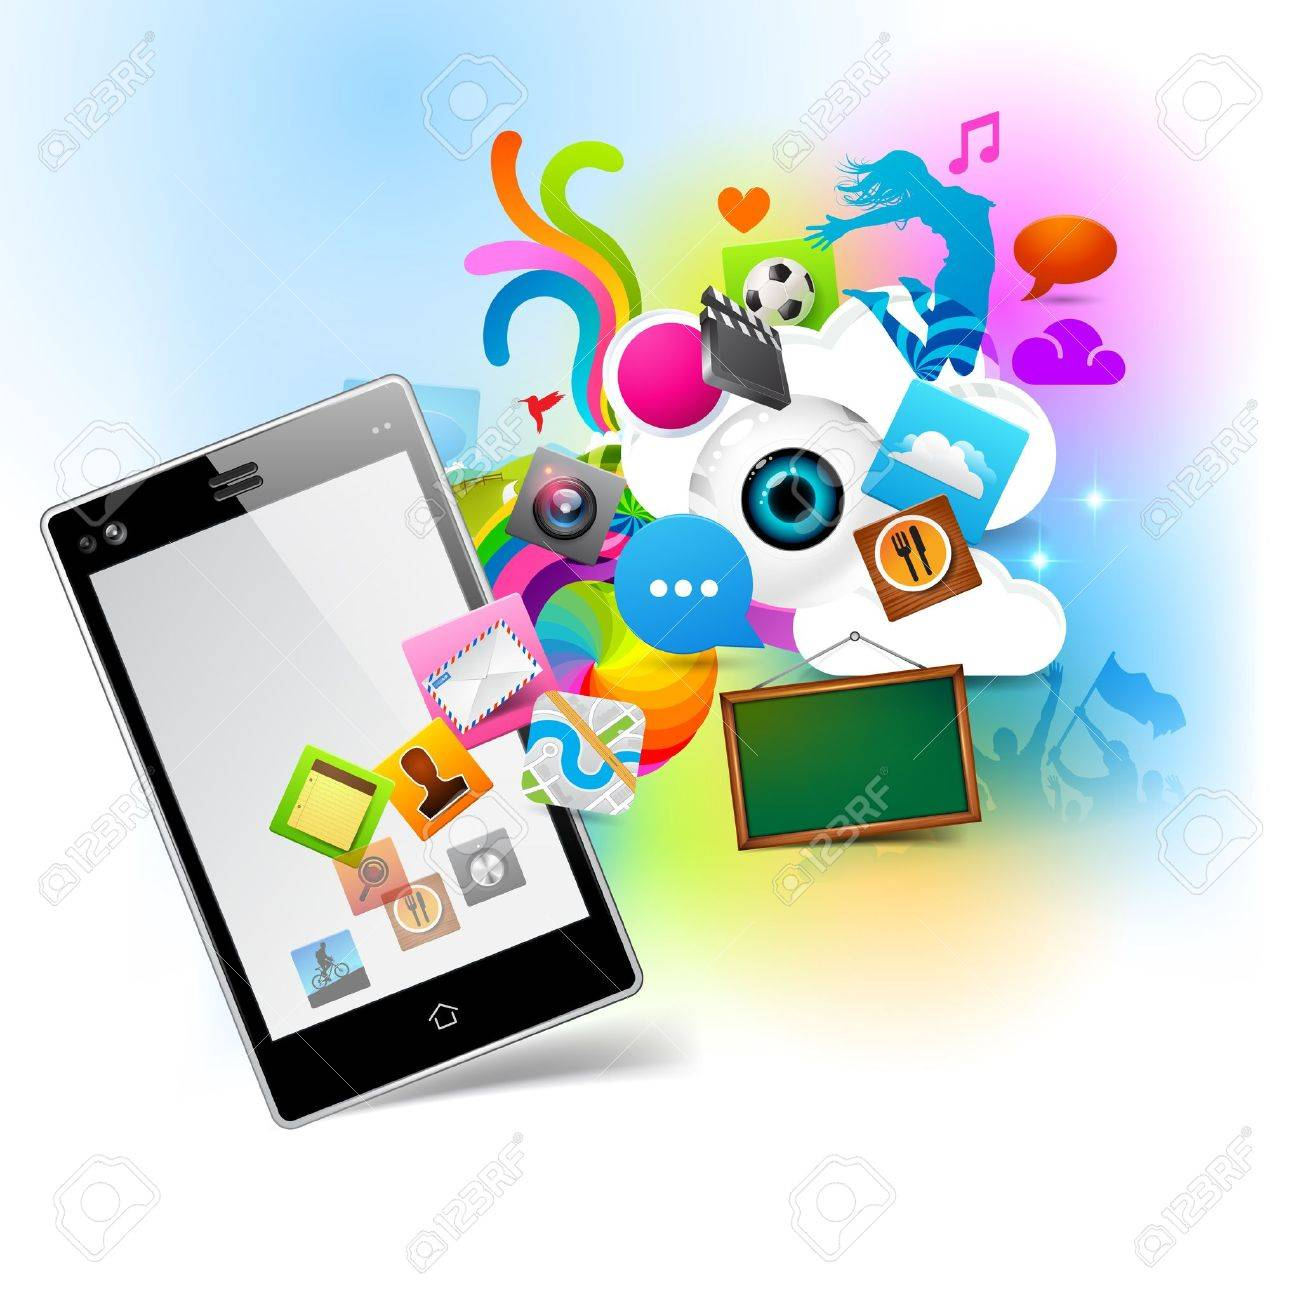 Colourful Technology  - Smartphone coming to life Stock Vector - 14968619